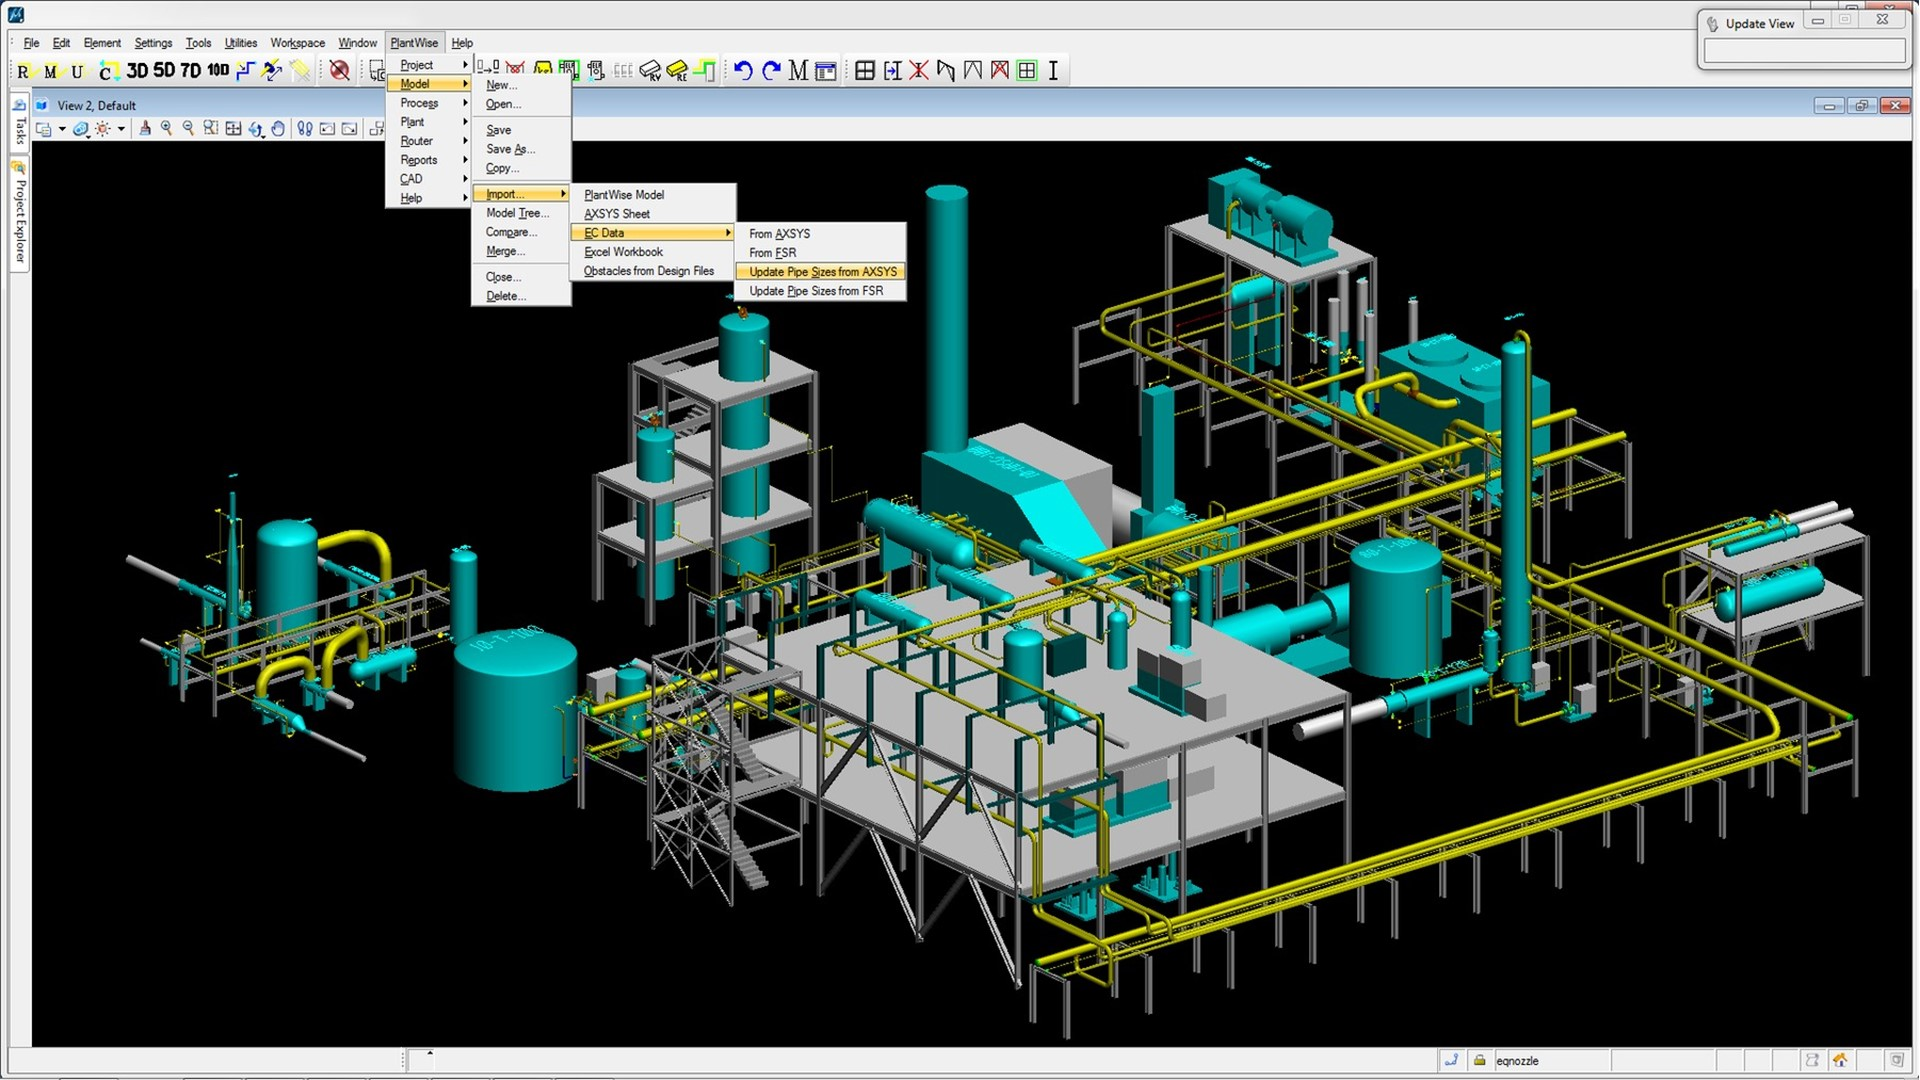 Try buy or learn more about Autodesk products